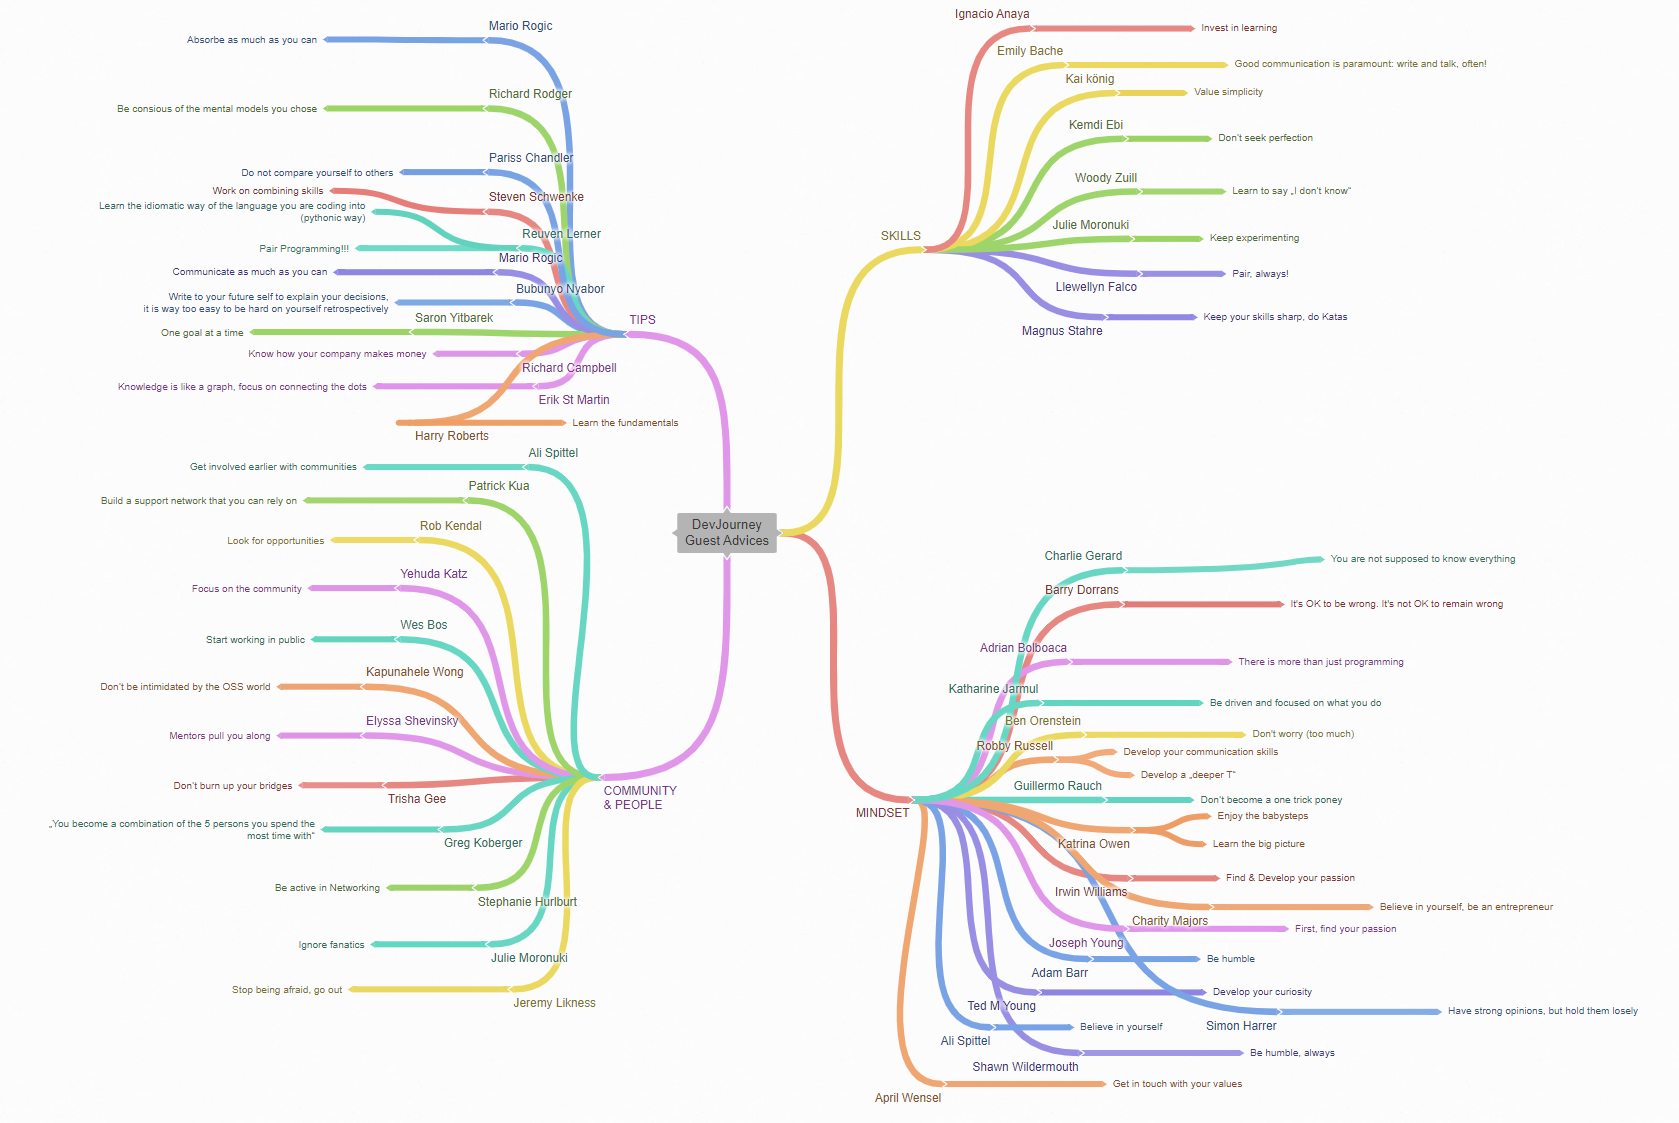 Mindmap of the Guest Advices in 2019